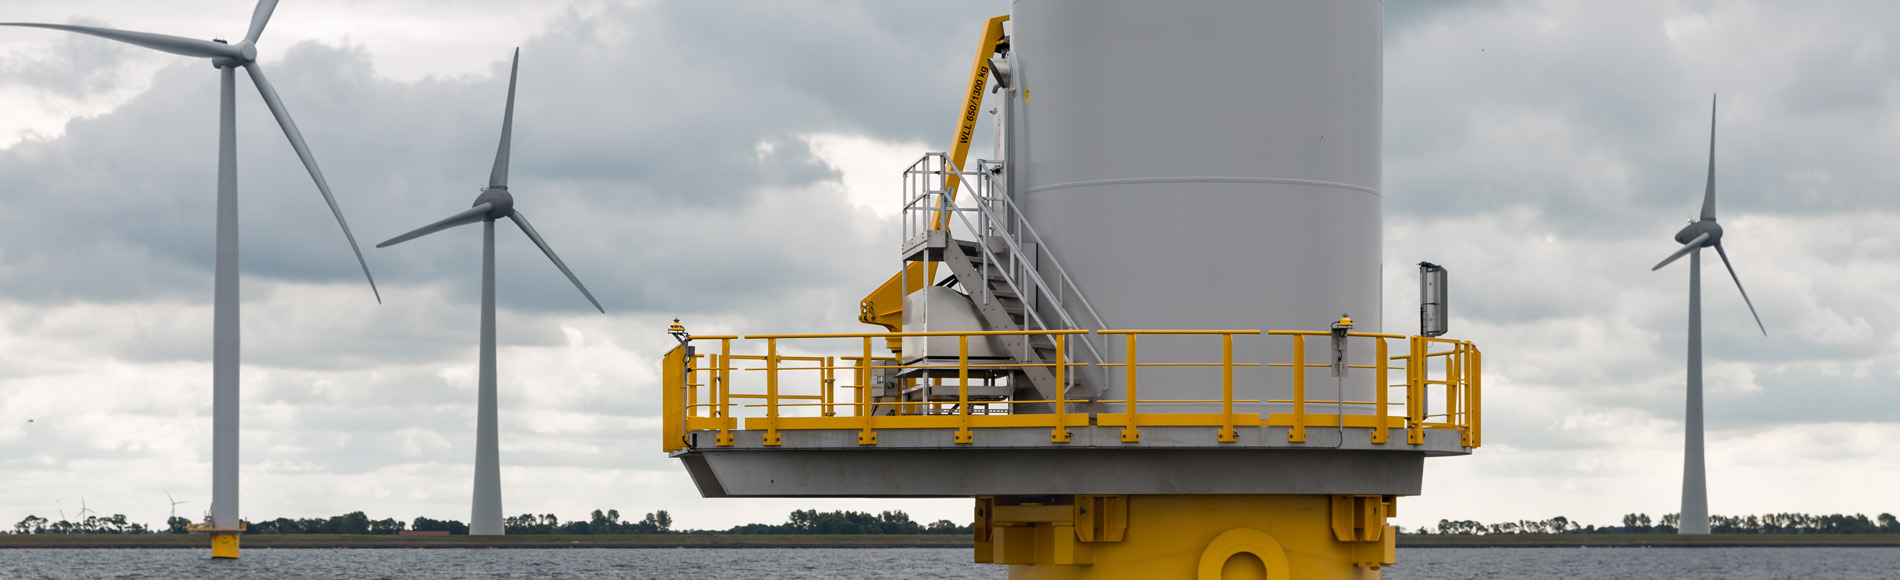 stock-photo-foundation-big-dutch-wind-turbine-in-the-sea-464725250-nudle